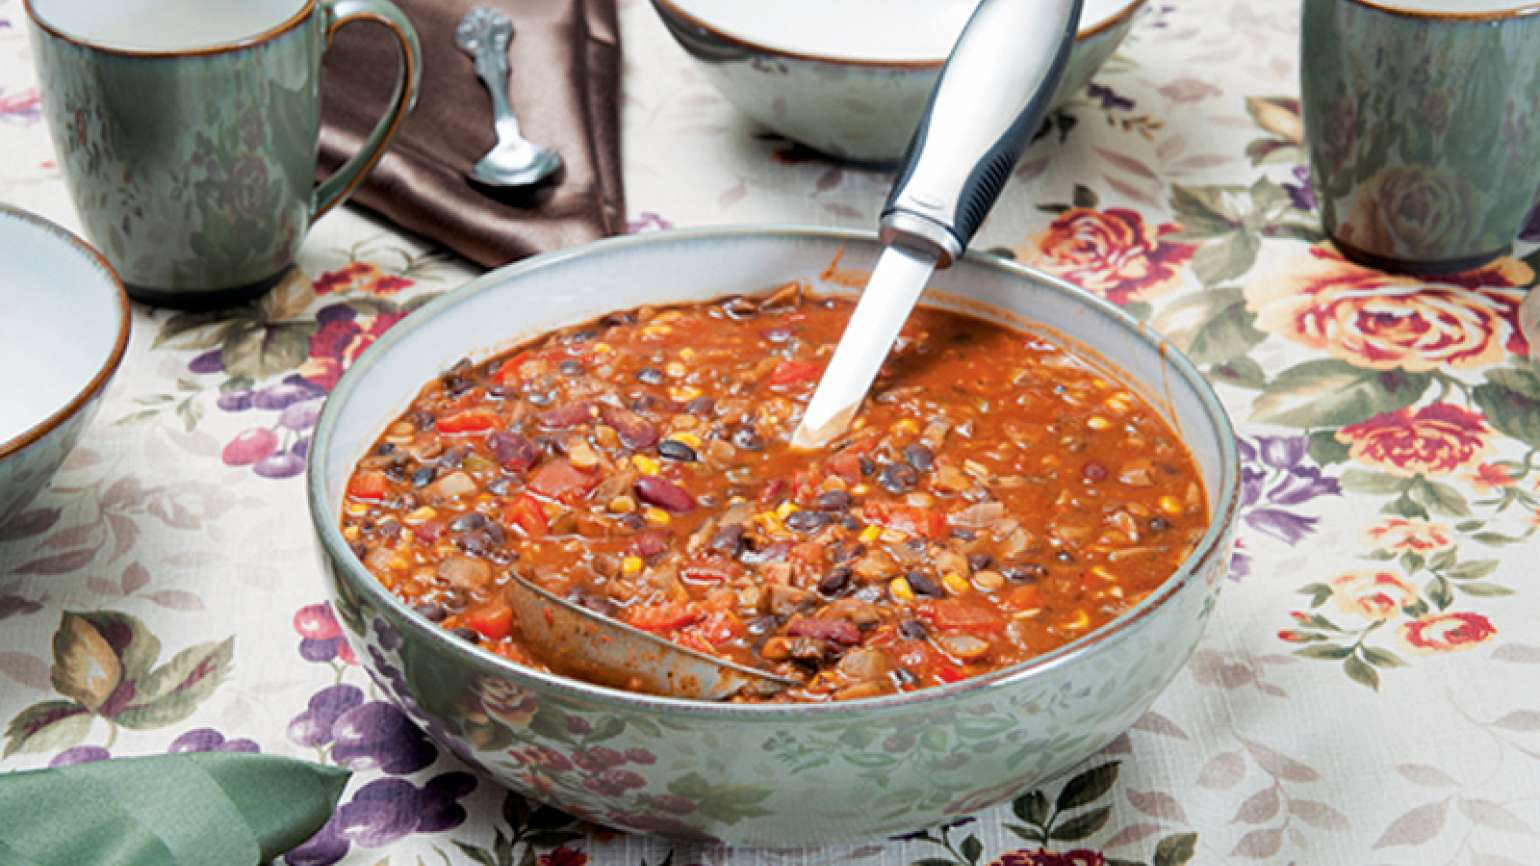 Guideposts: A large serving dish filled with vegetarian chili